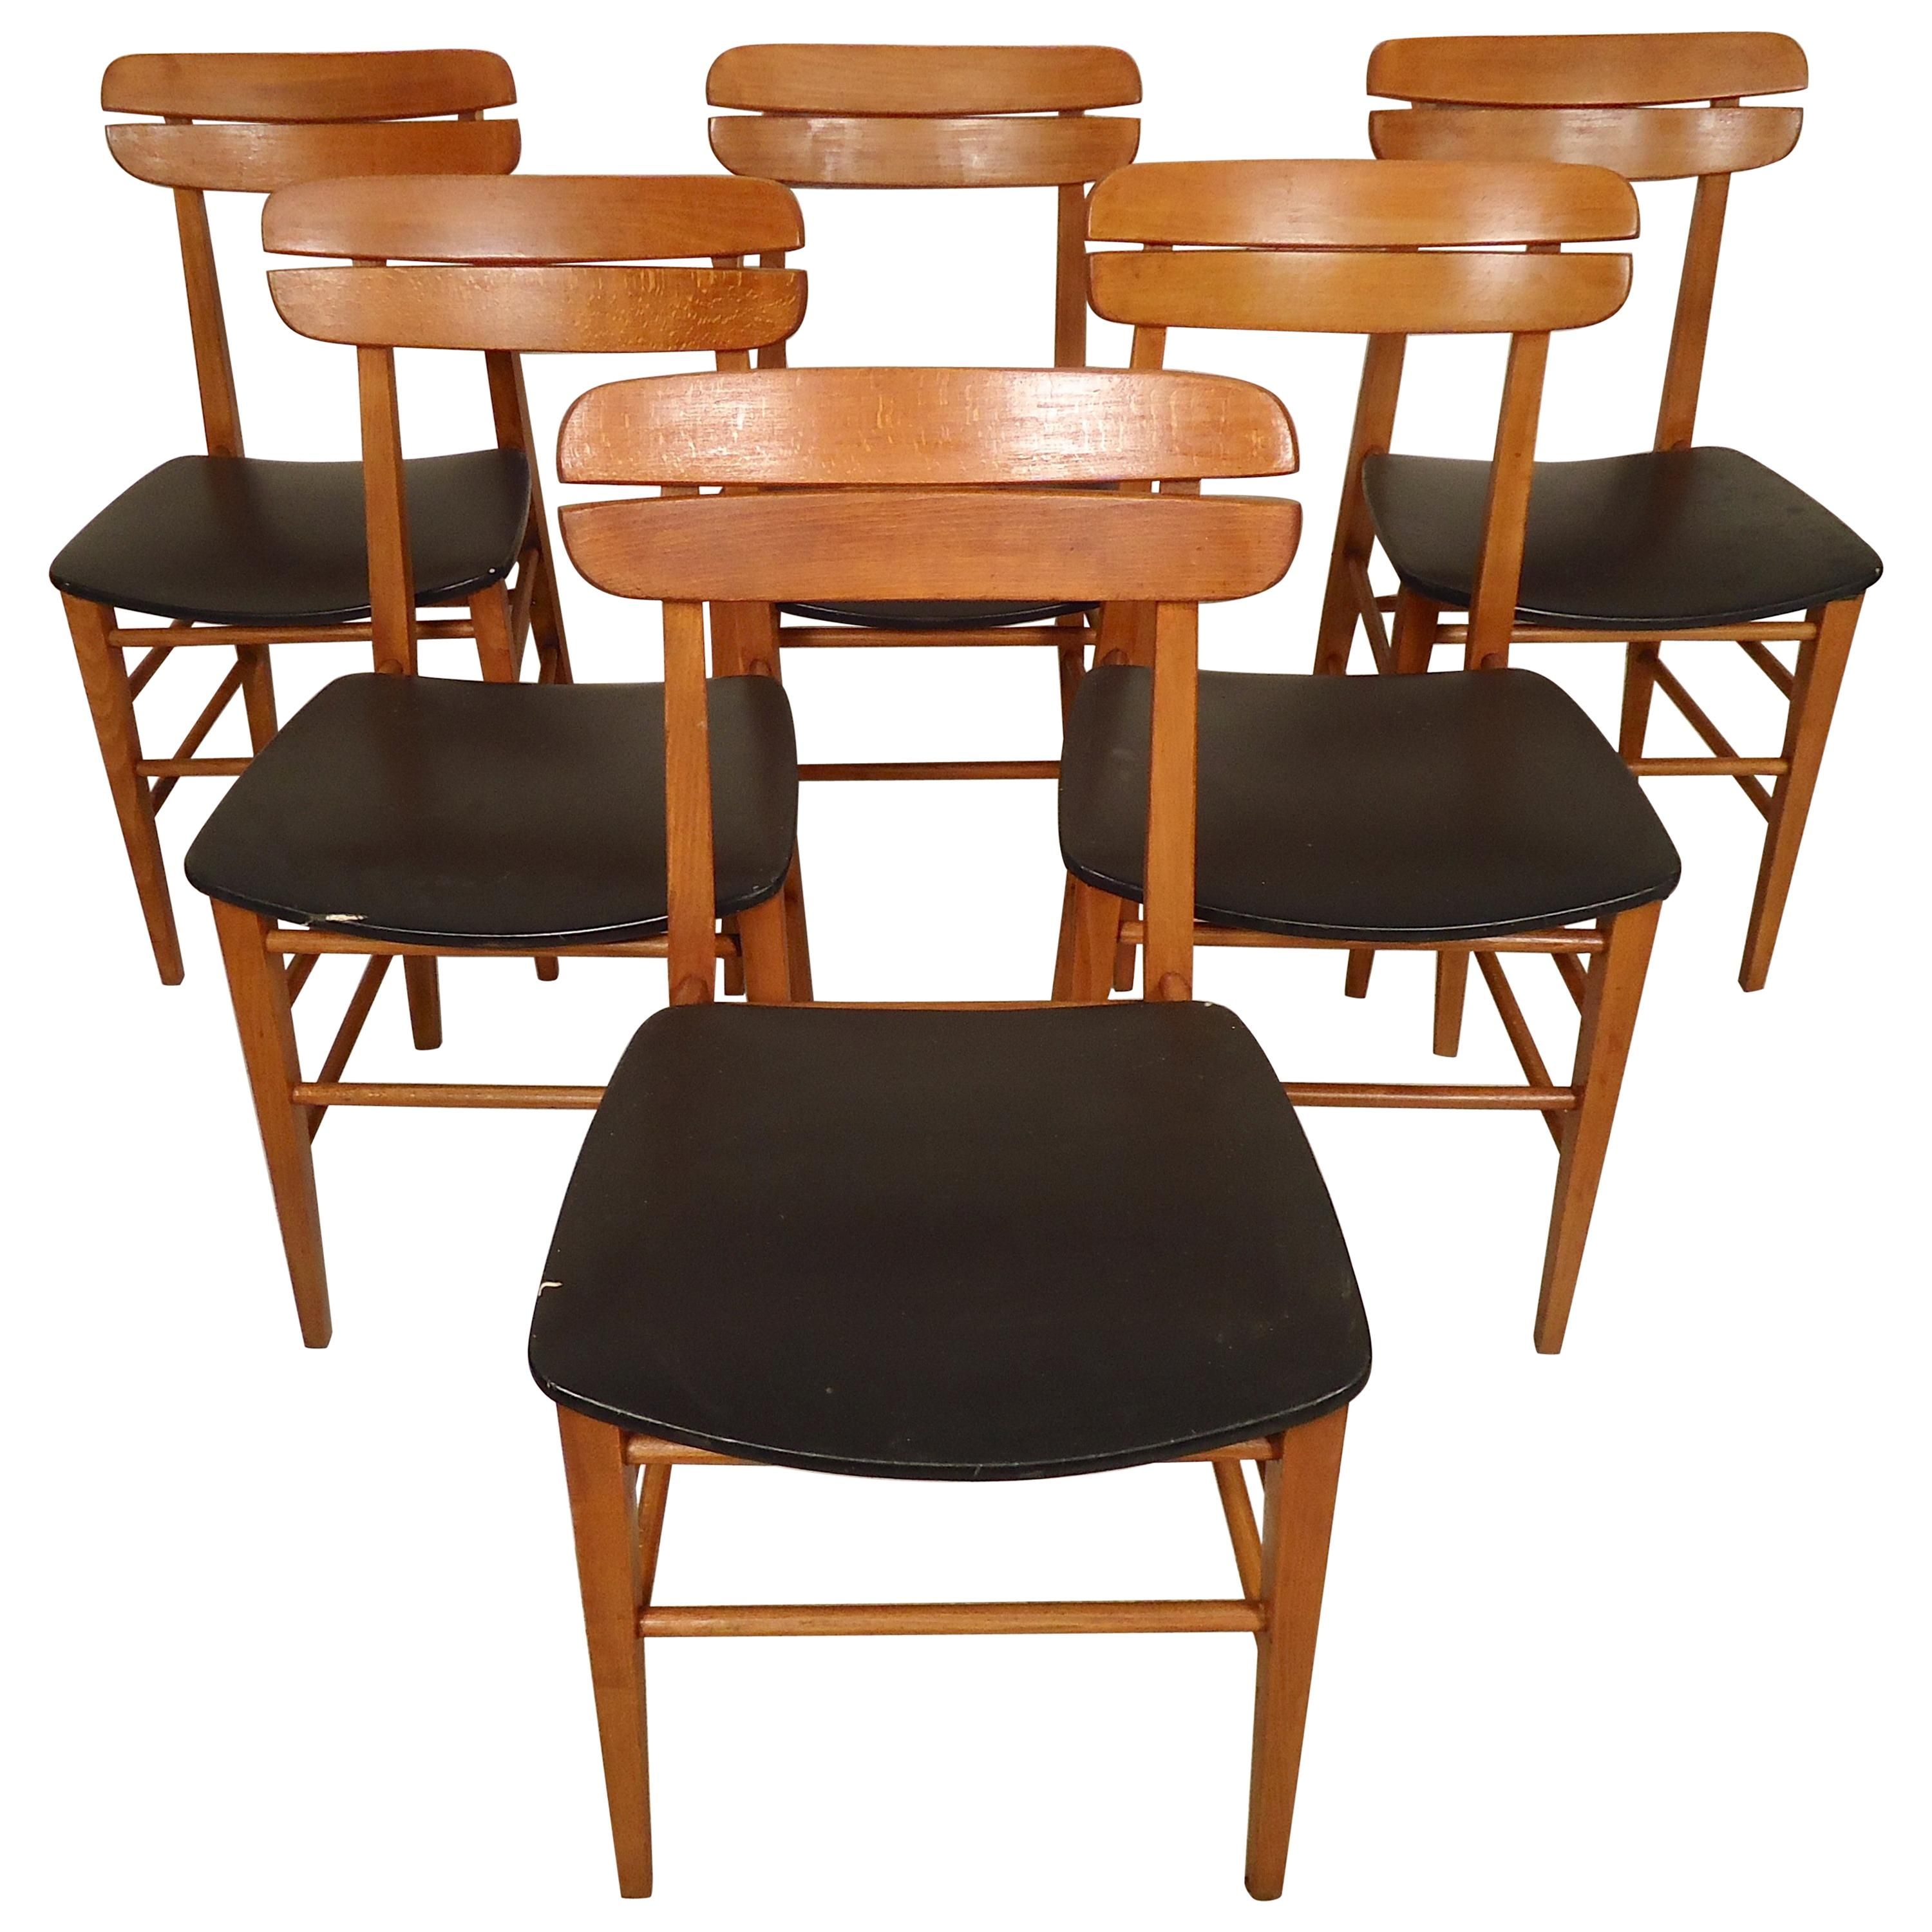 Set of Mid-Century Modern Dining Chairs